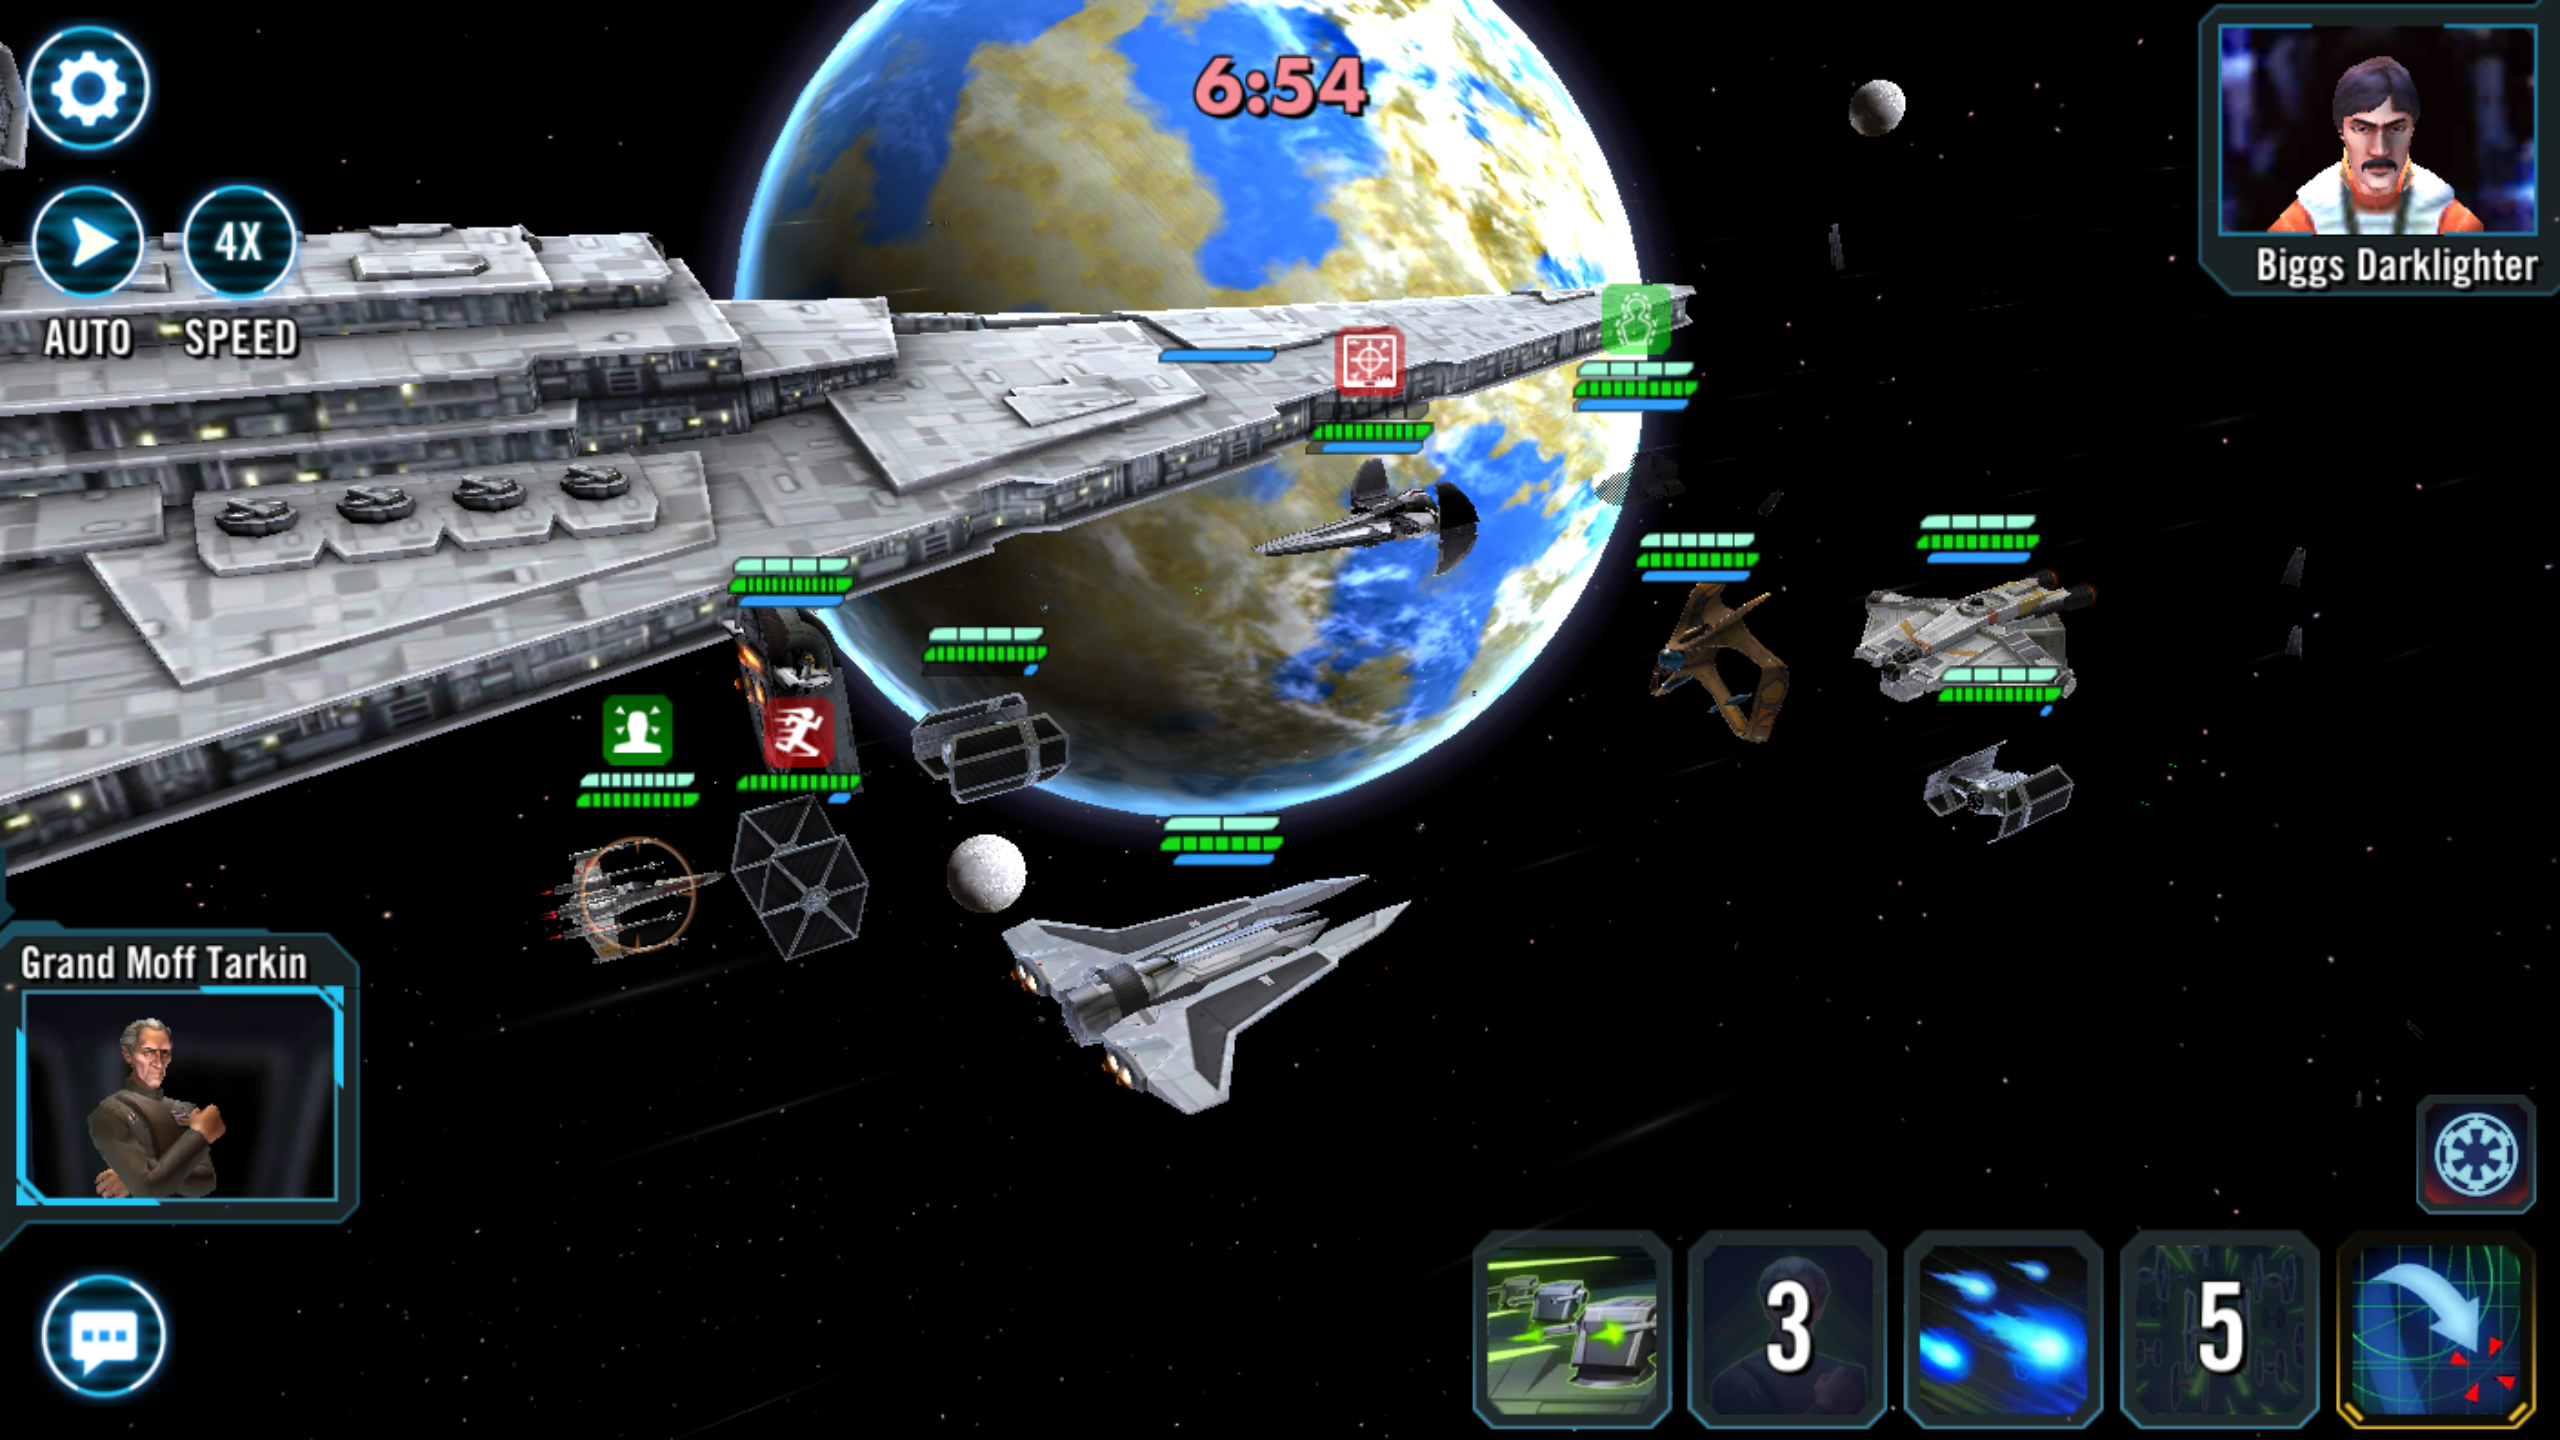 6 on 4 Ship Battle in TW — Star Wars Galaxy of Heroes Forums